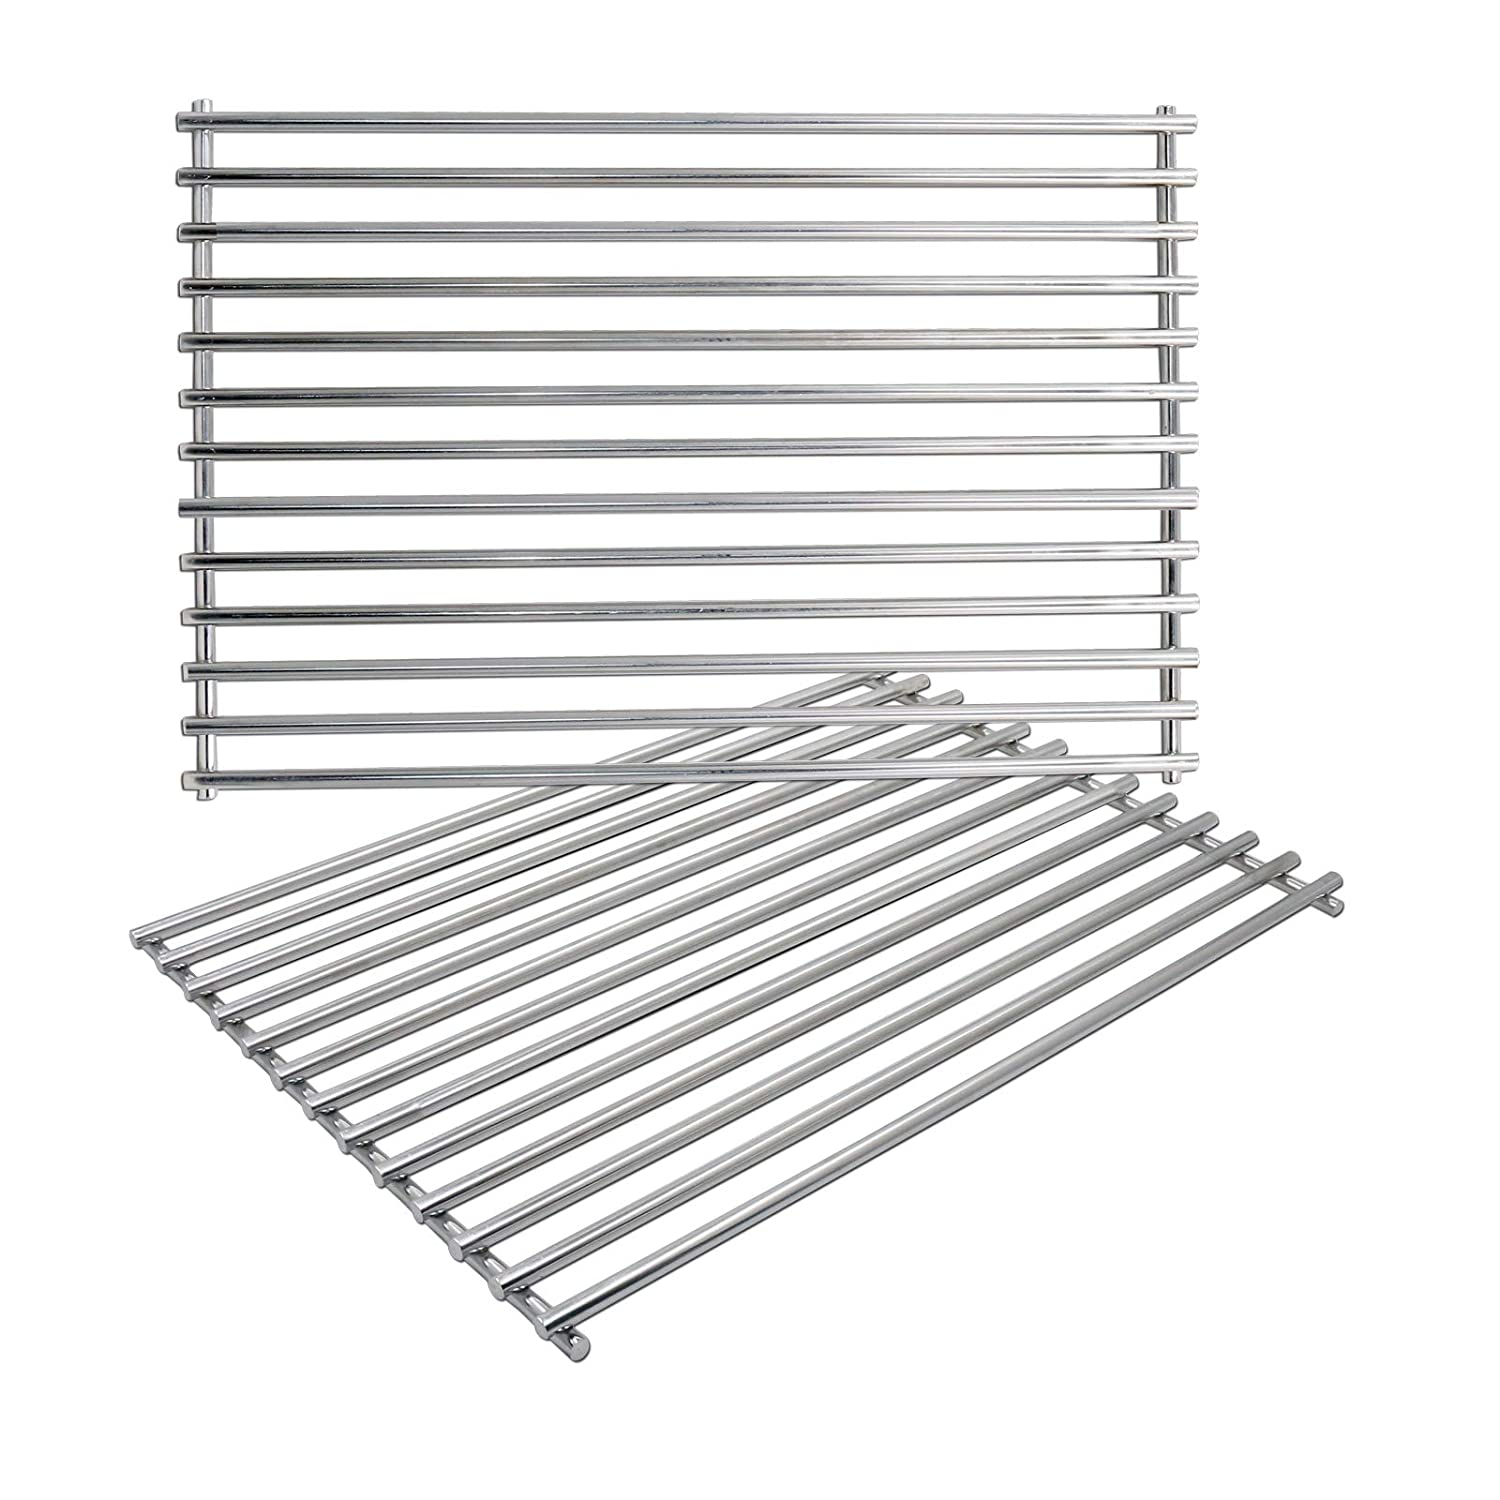 Uniflasy Cast Iron Grill Cooking Grid Grates Replacement Parts for Weber Spirit 300 Series, Spirit 700, Weber 7526, Genesis 1000-3500, Genesis Silver B/C, Genesis Gold B/C, Genesis Platinum B/C (2005)